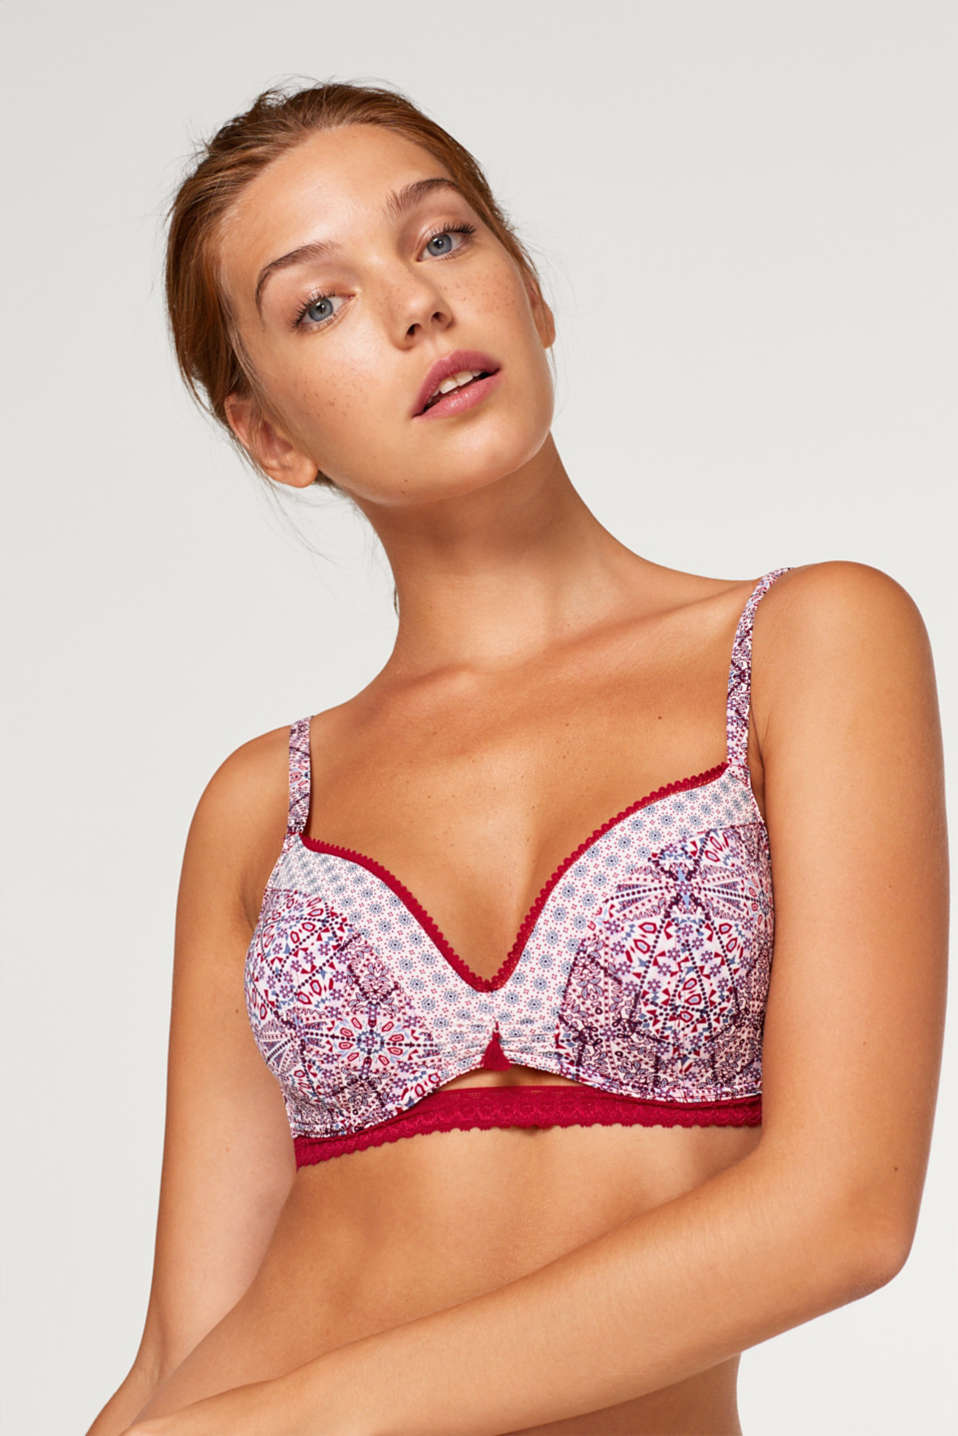 Esprit - Non-wired, padded bra in a mixed pattern